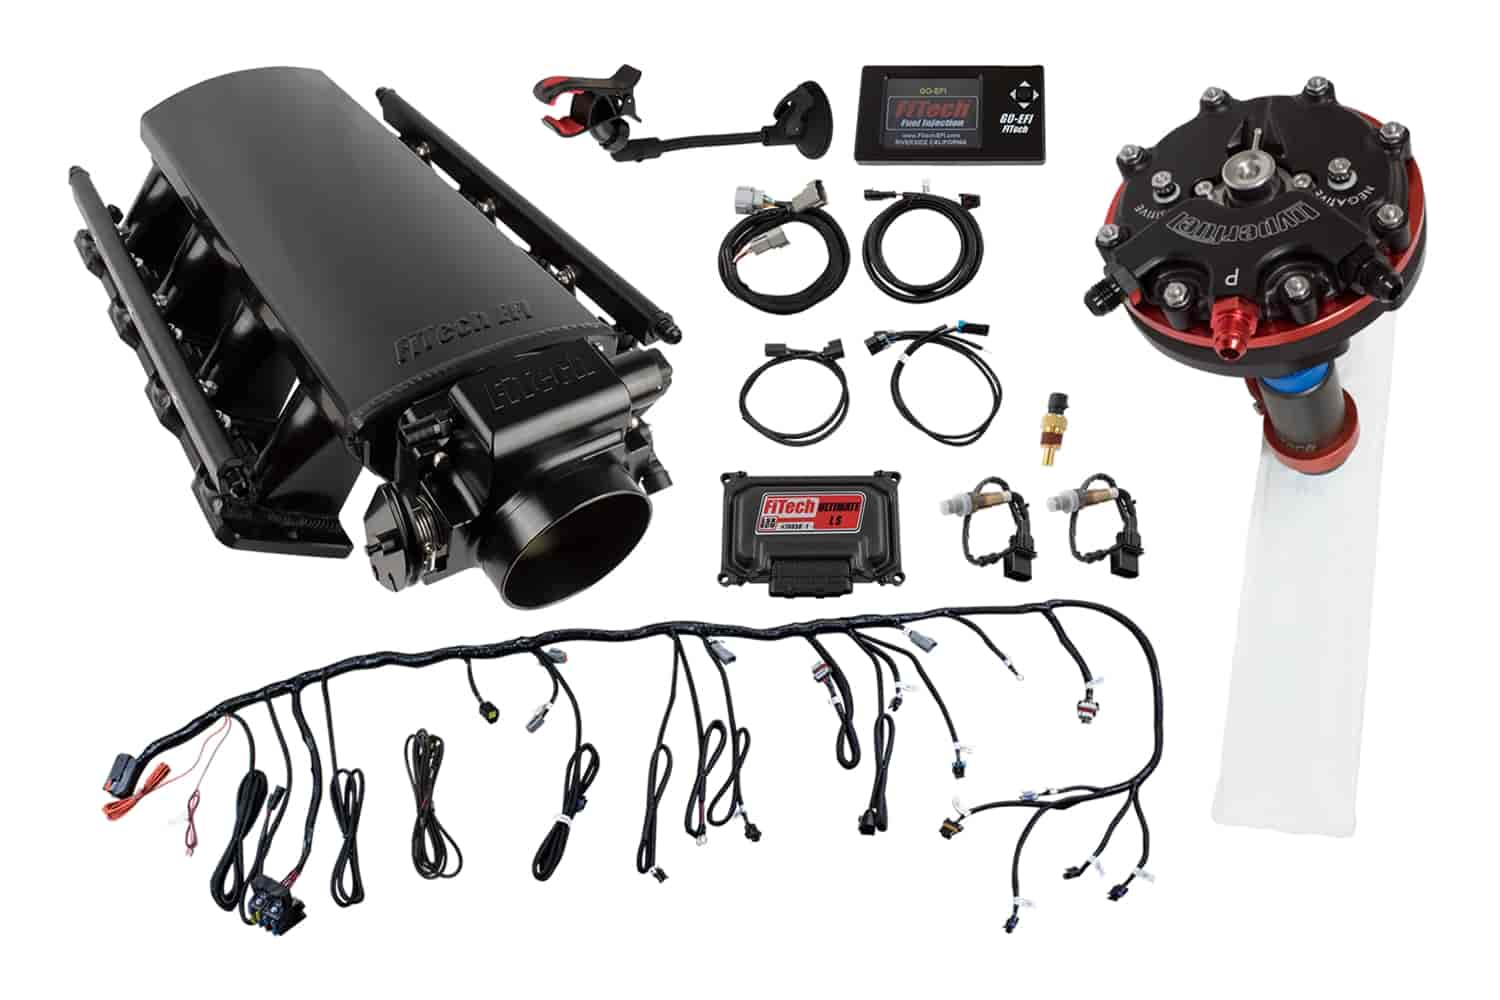 FITech Fuel Injection Ultimate LS EFI Induction System LS1/LS2/LS6 750 HP  with Hy-Fuel Single Pump Regulated In-Tank Retrofit Kit